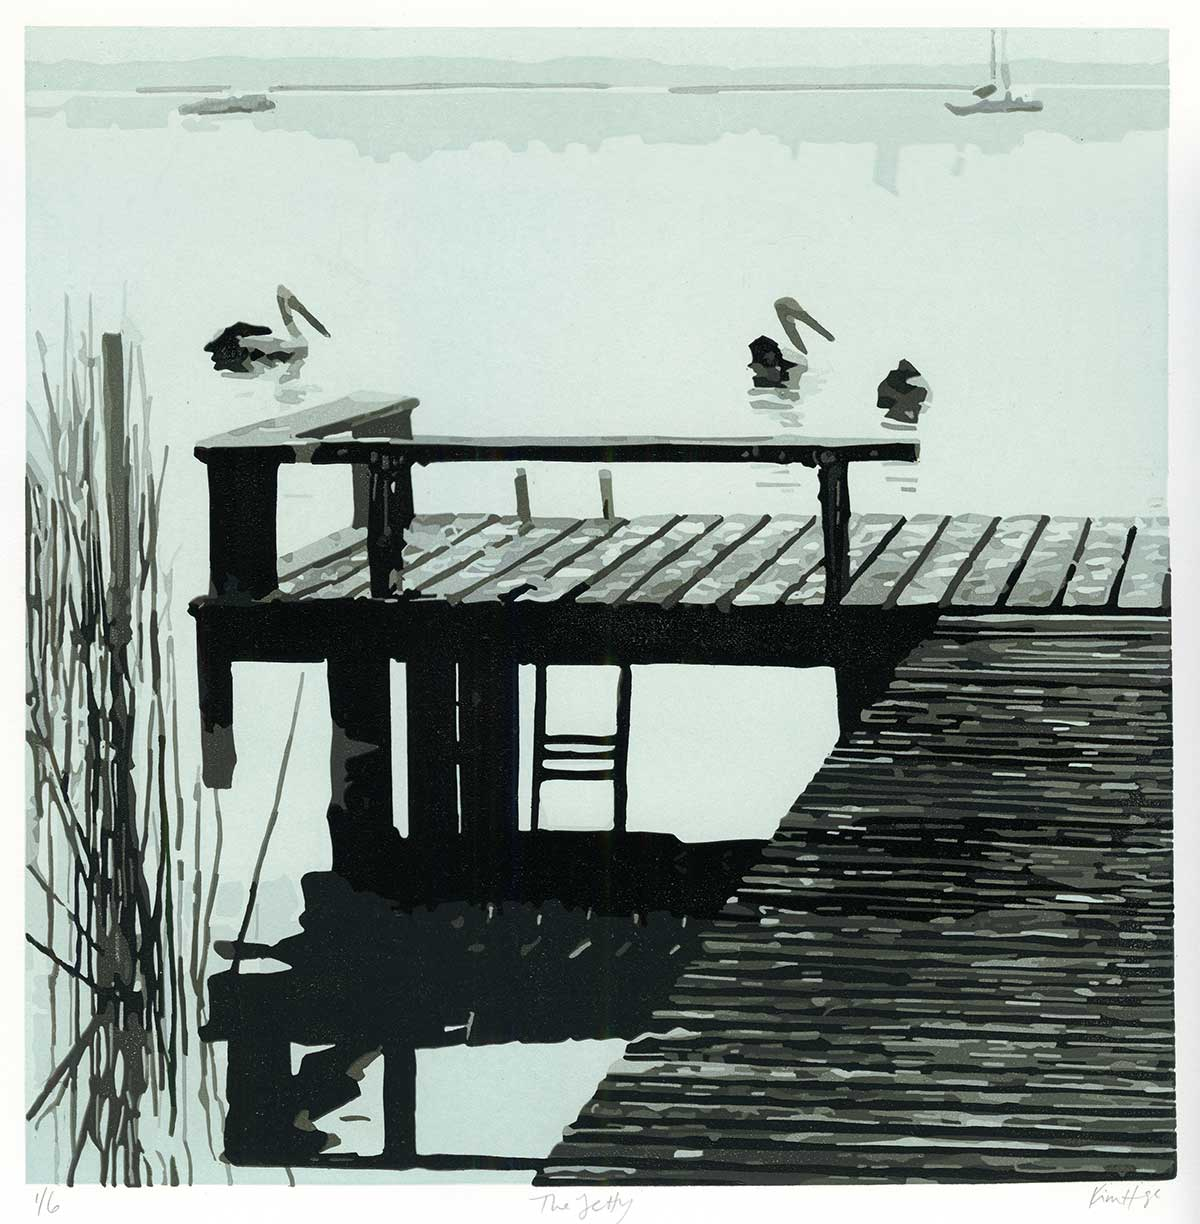 The Jetty - Reduction Linocut